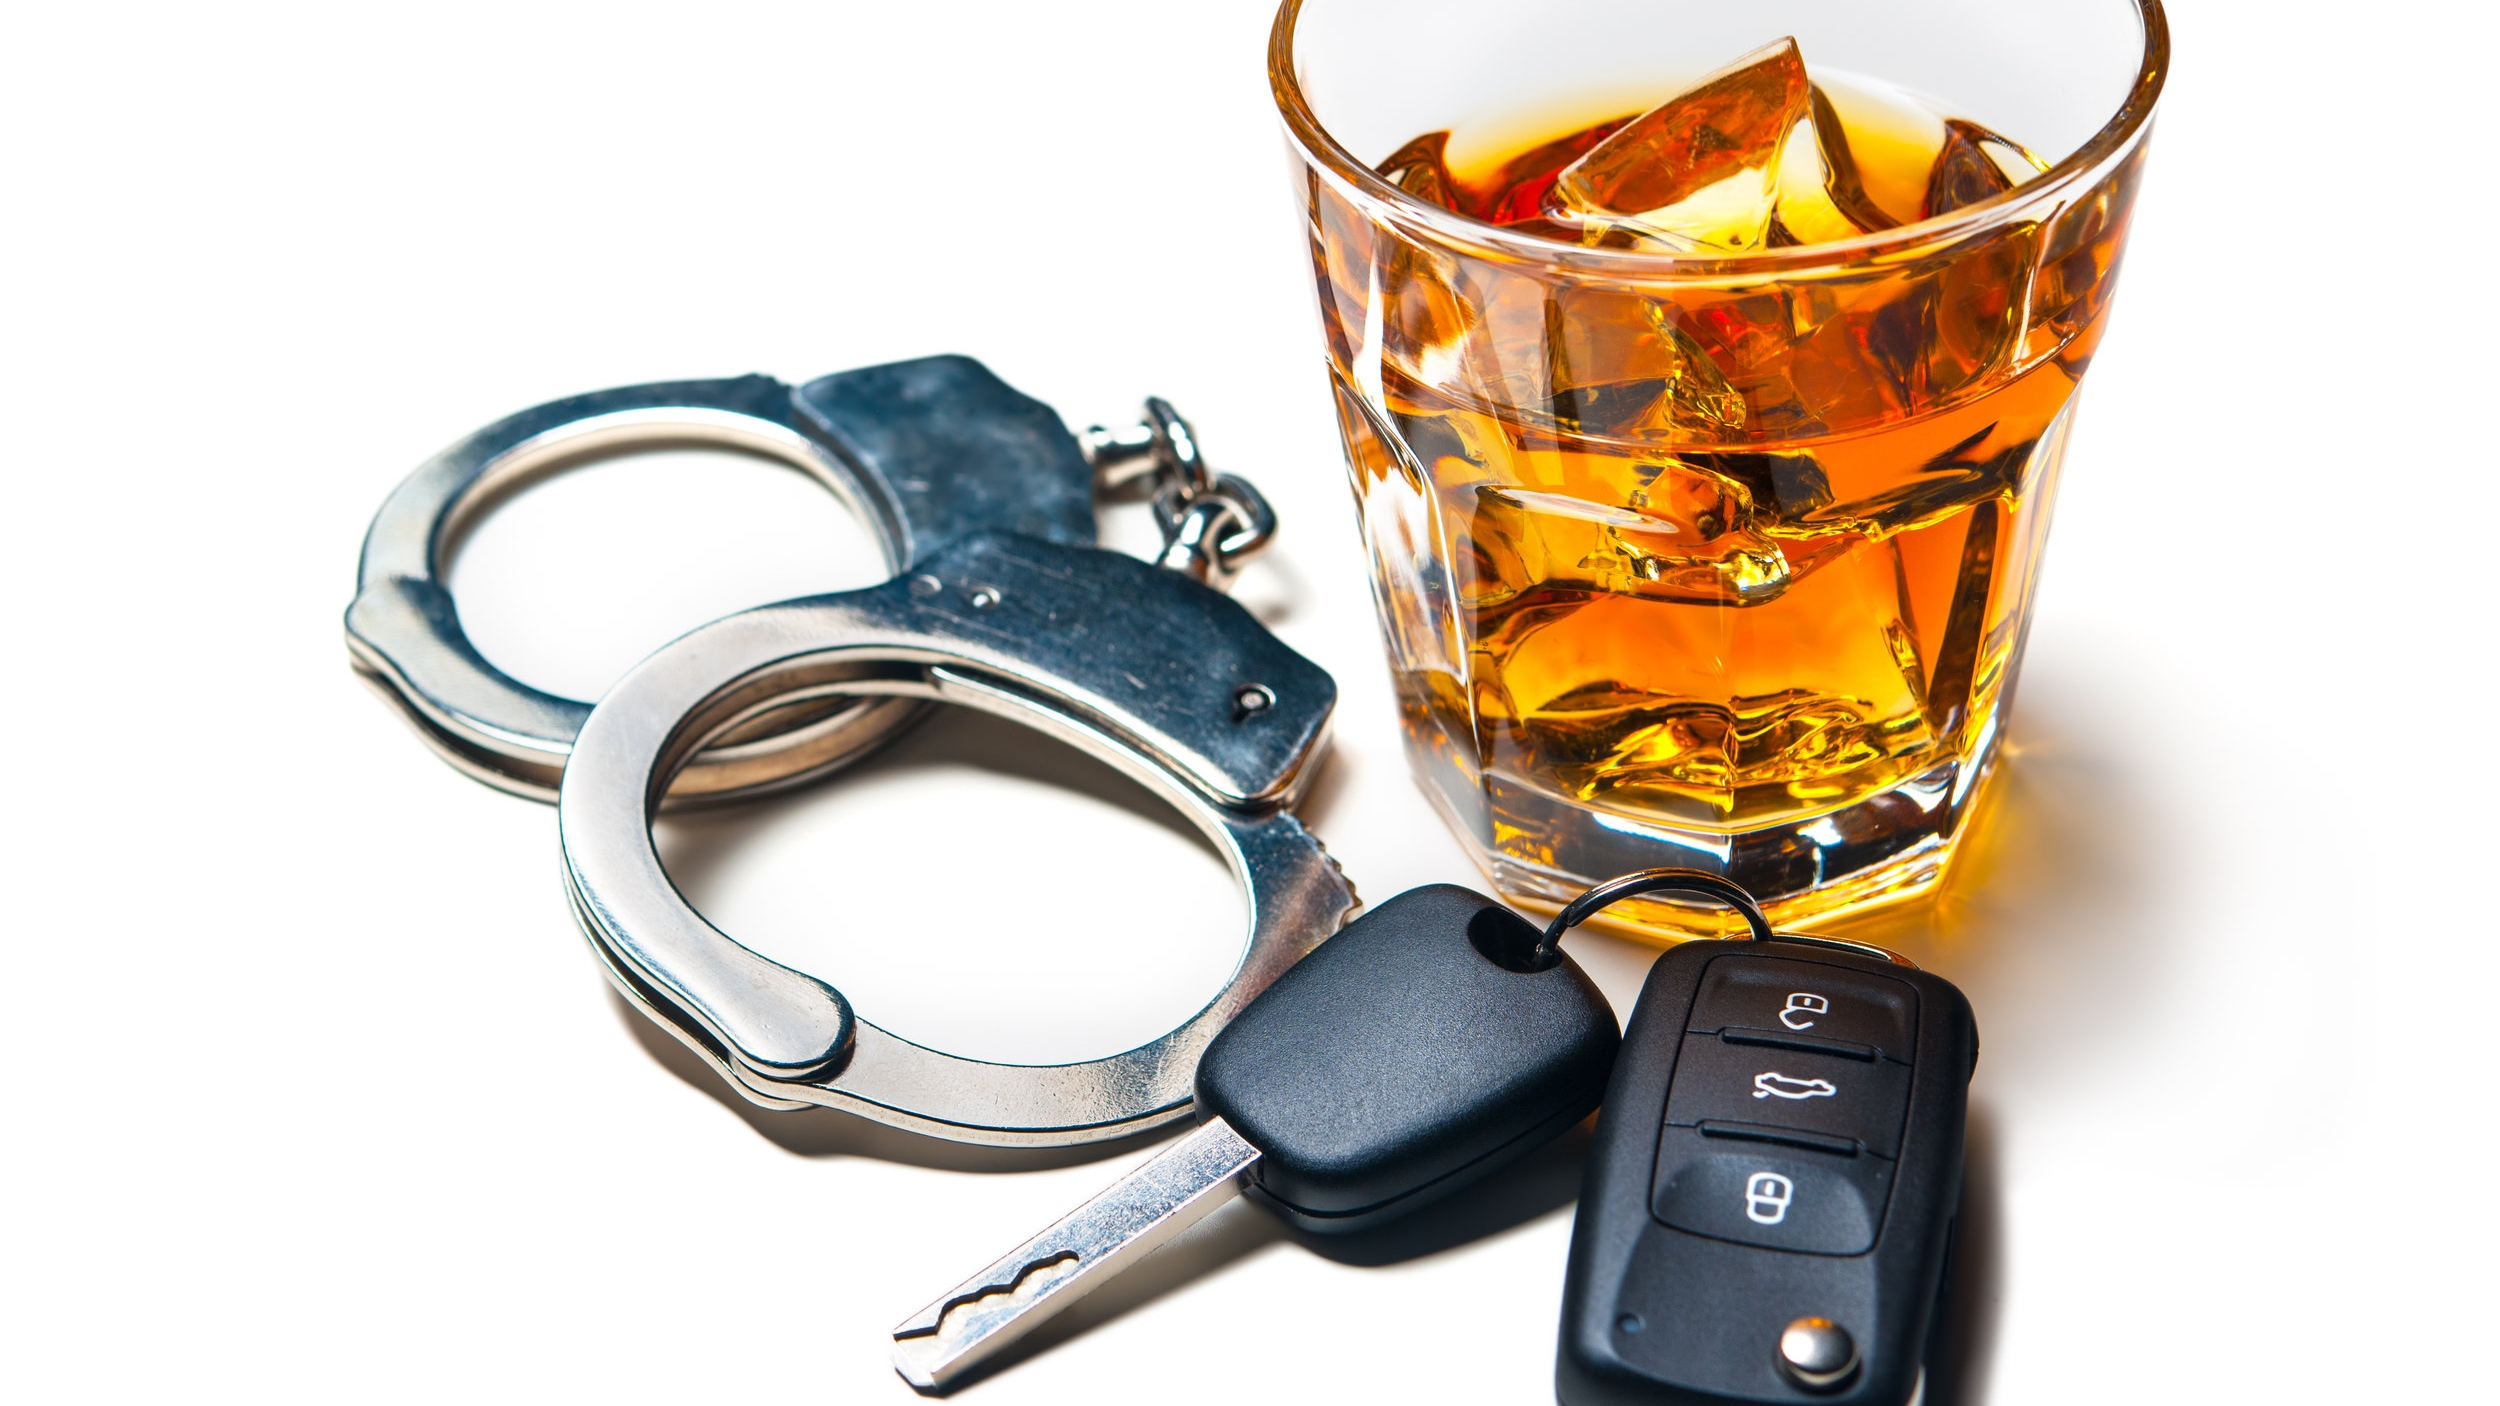 12_ShSt_DUI_ stock-photo-whiskey-with-car-keys-and-handcuffs-concept-for-drinking-and-driving-404002510.jpg